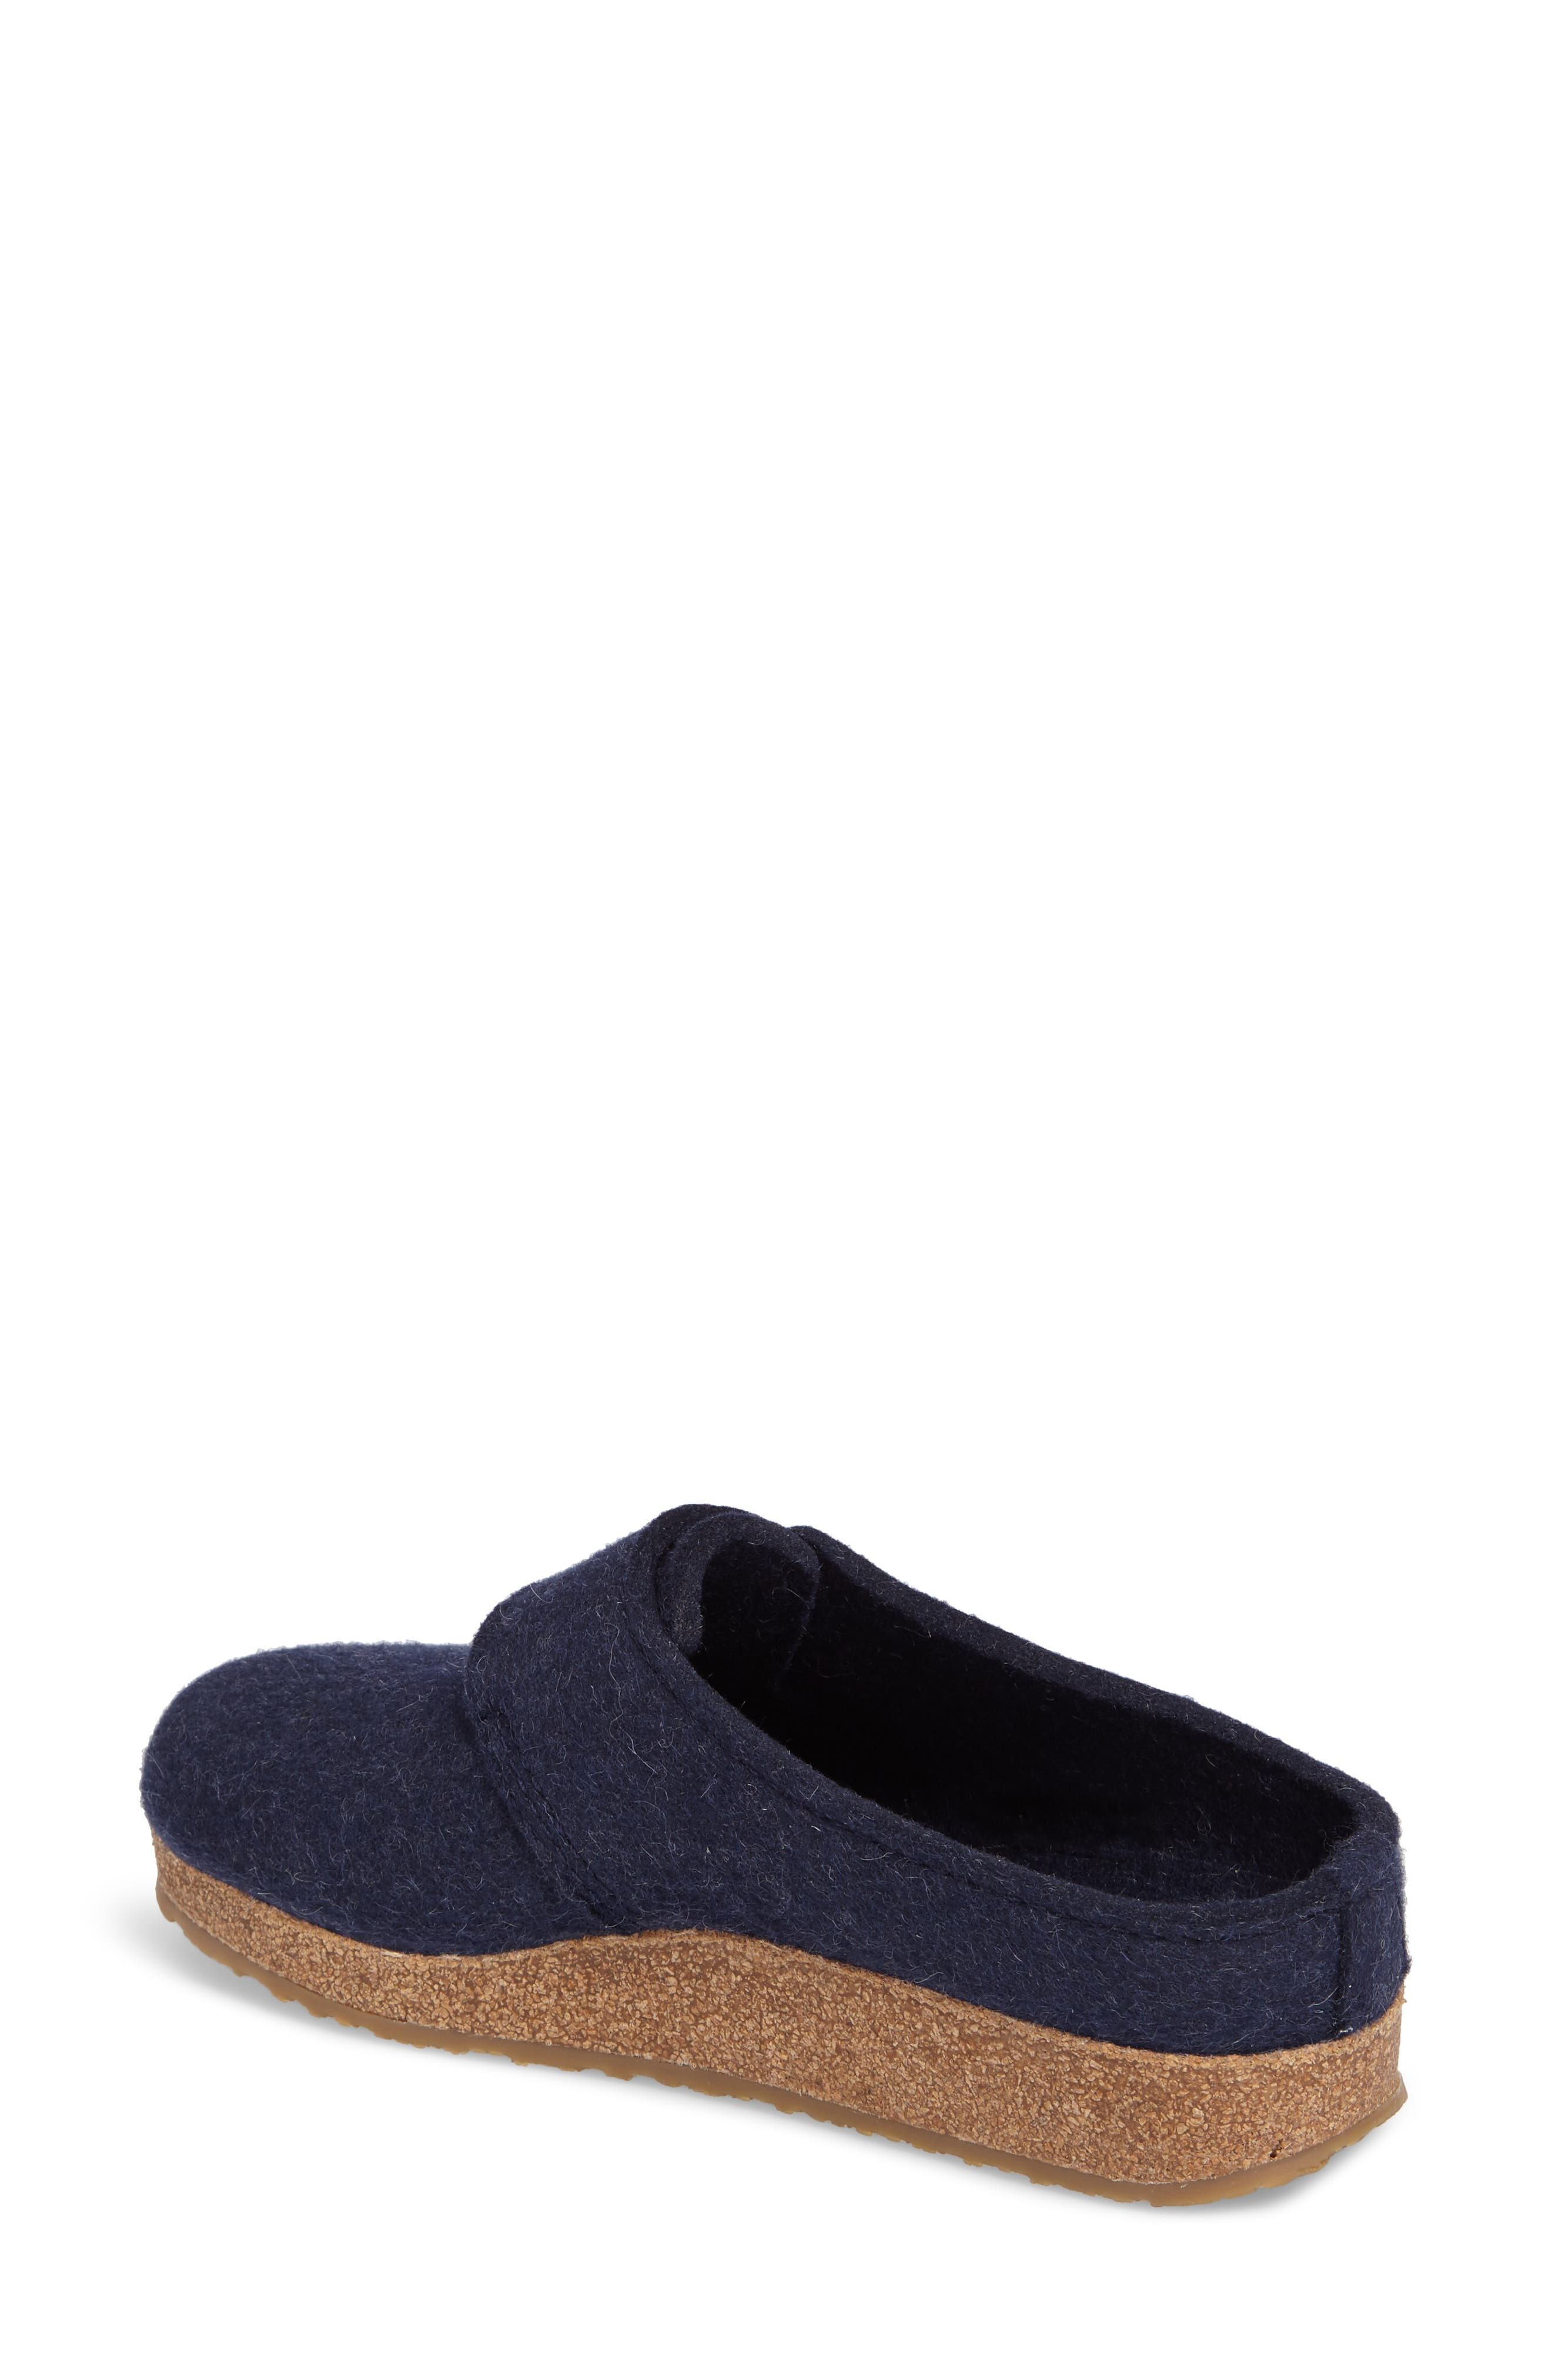 Grizzly Journey Clog Slipper,                             Alternate thumbnail 2, color,                             Captains Blue Wool